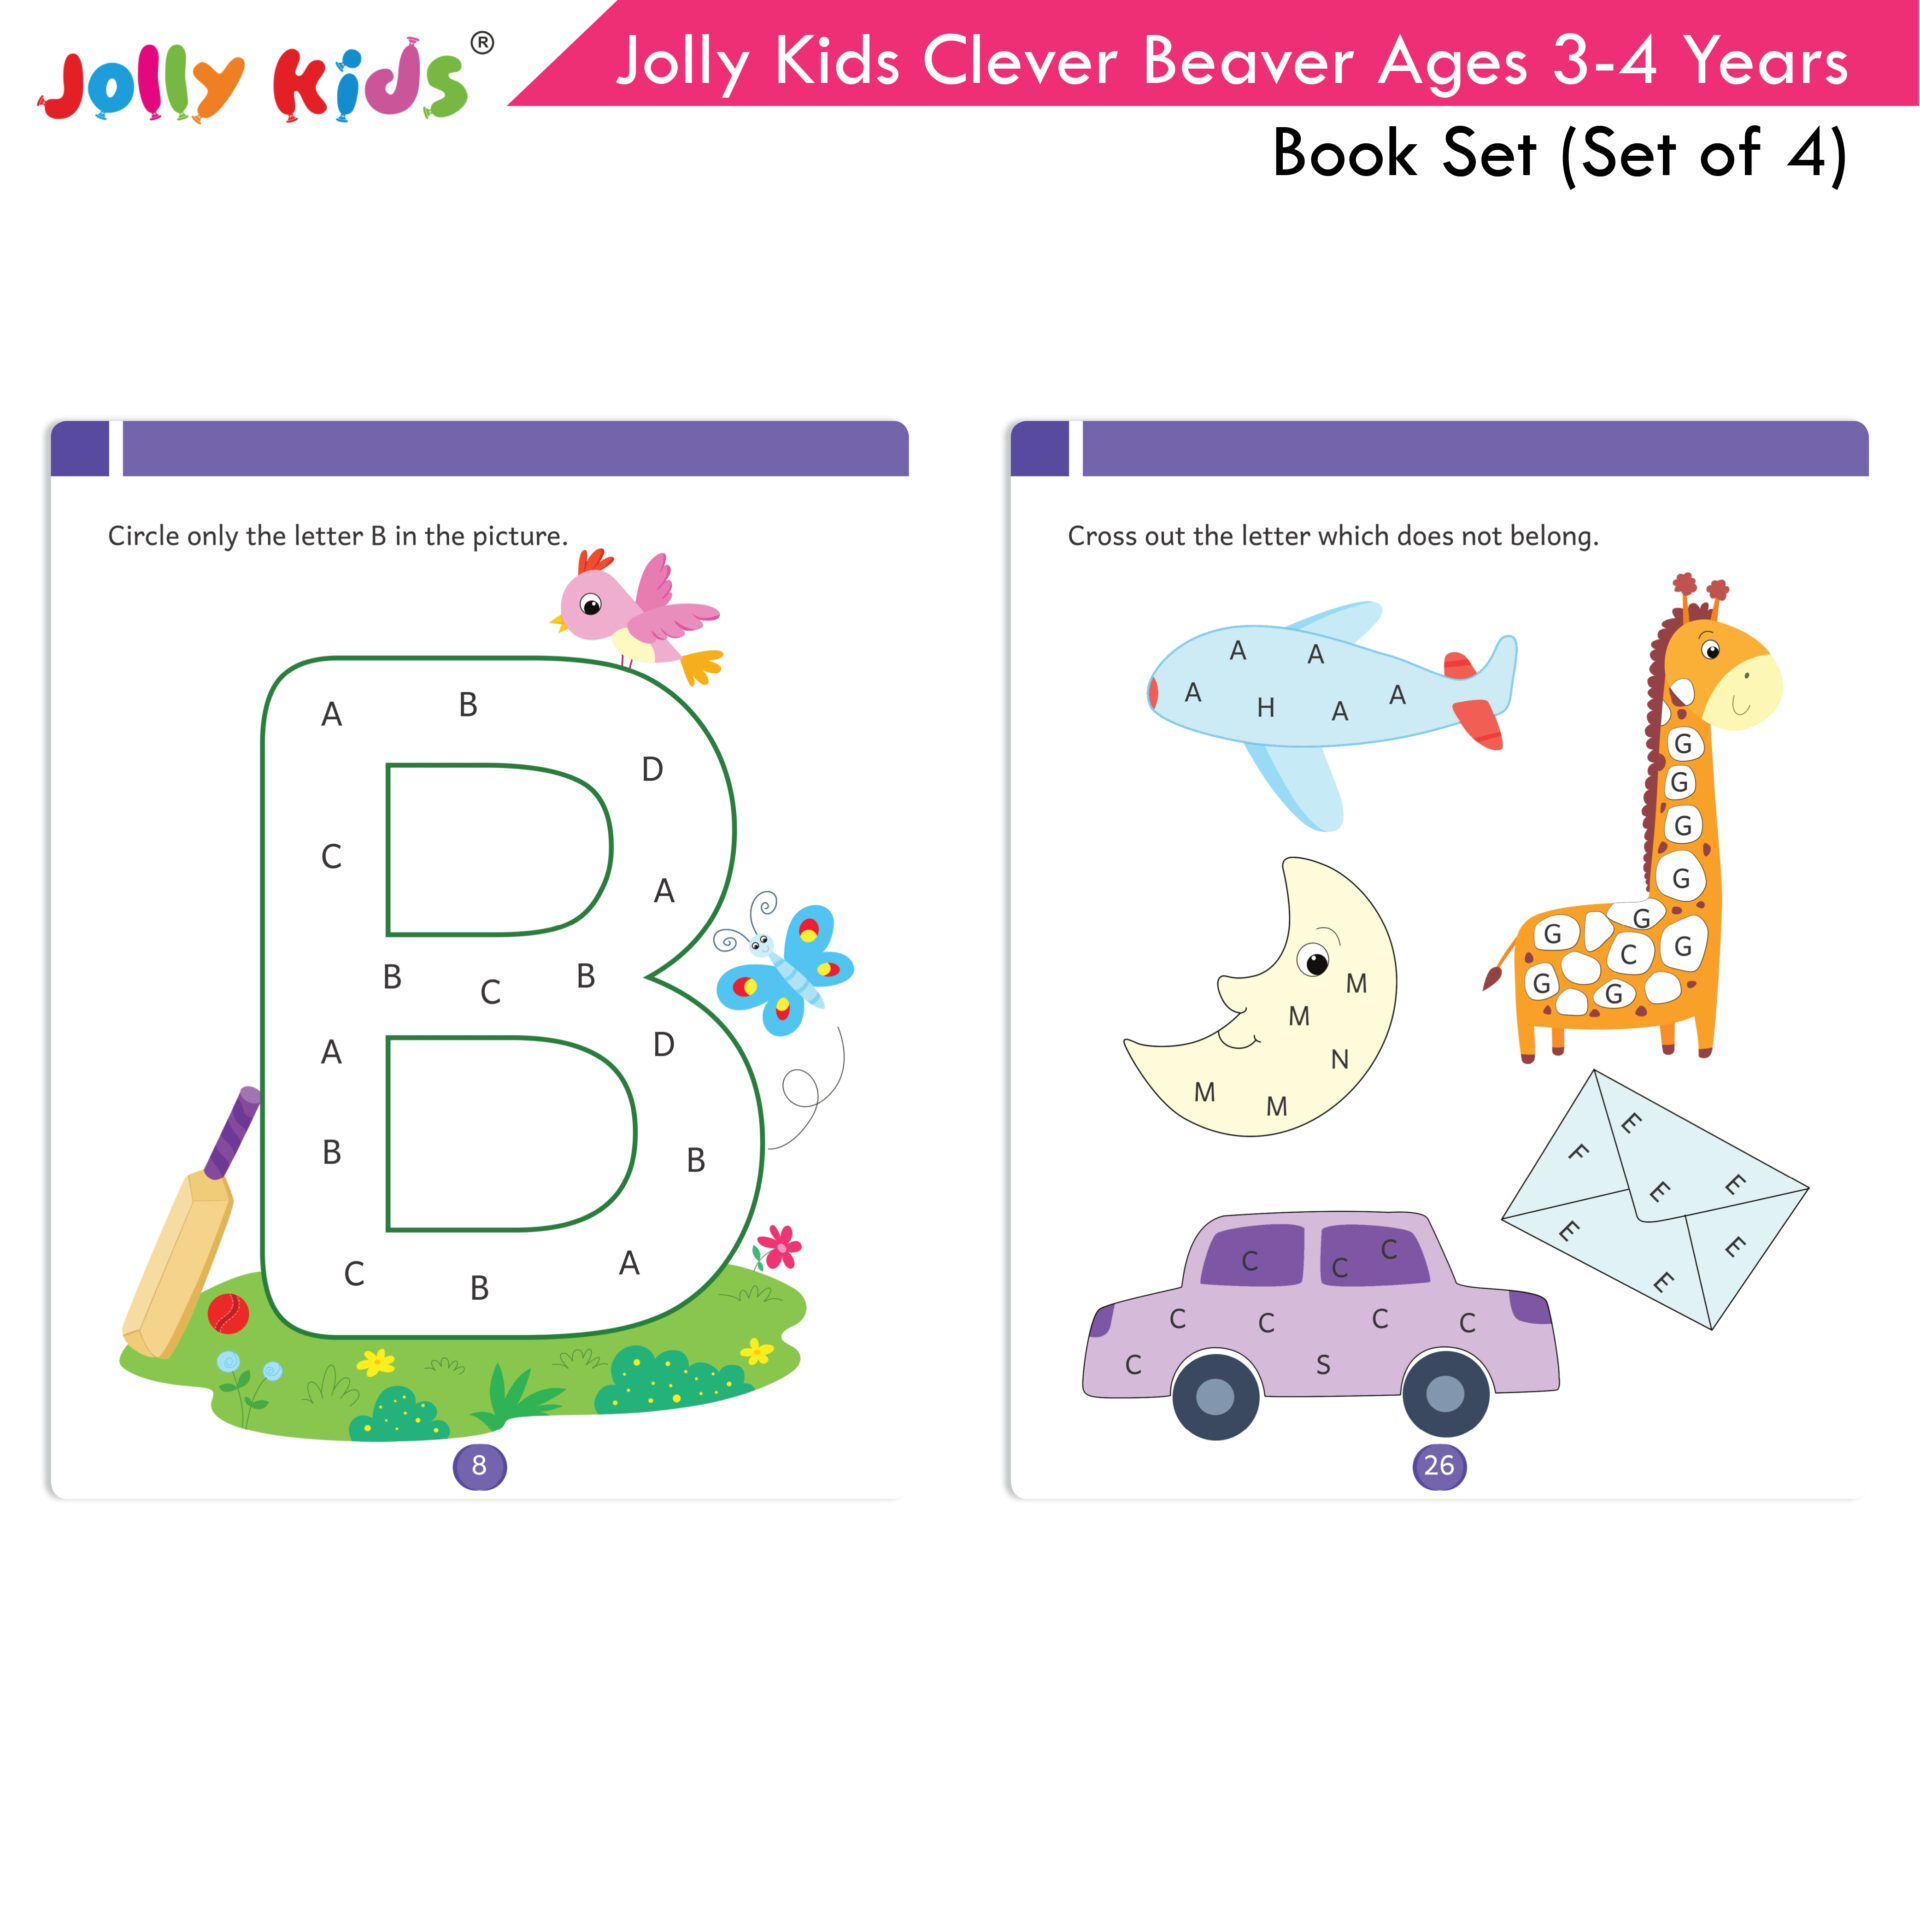 Jolly Kids Clever Beaver Ages 3 4 Years Book Set Set of 4 3